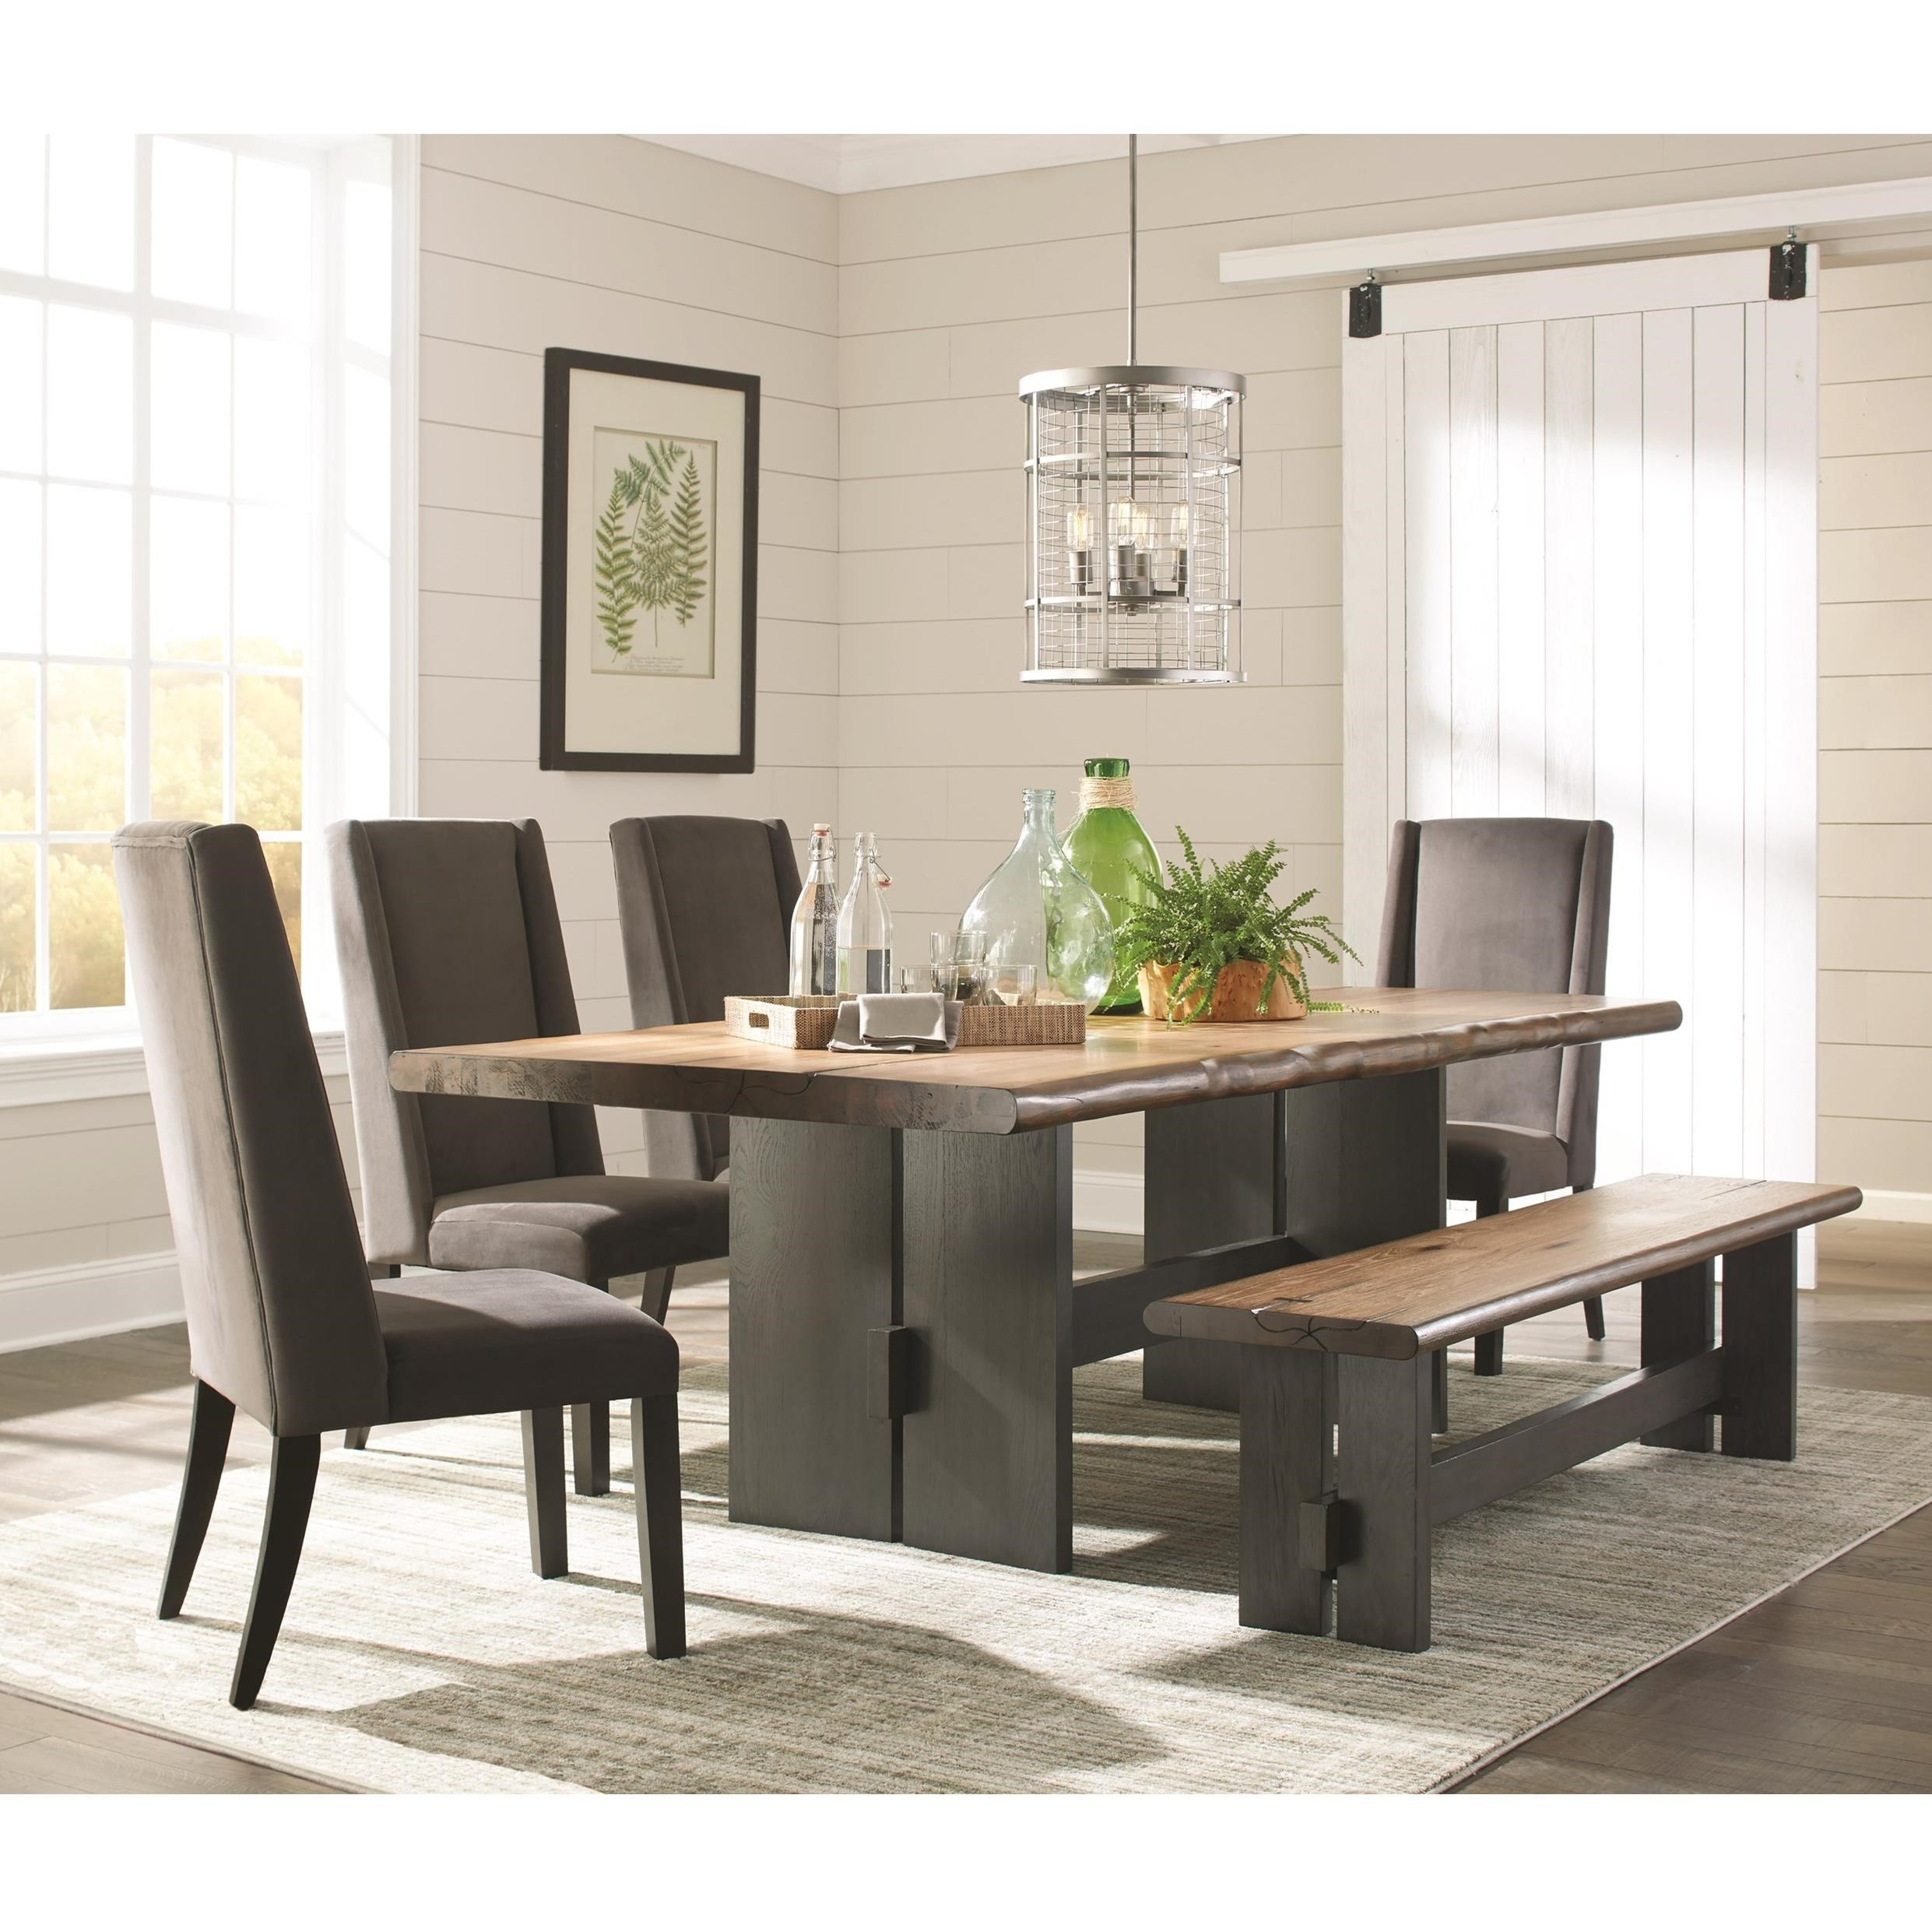 Scott Living Marquette Live Edge Dining Table Set With Bench Value within 13 Smart Tricks of How to Upgrade Live Room Set